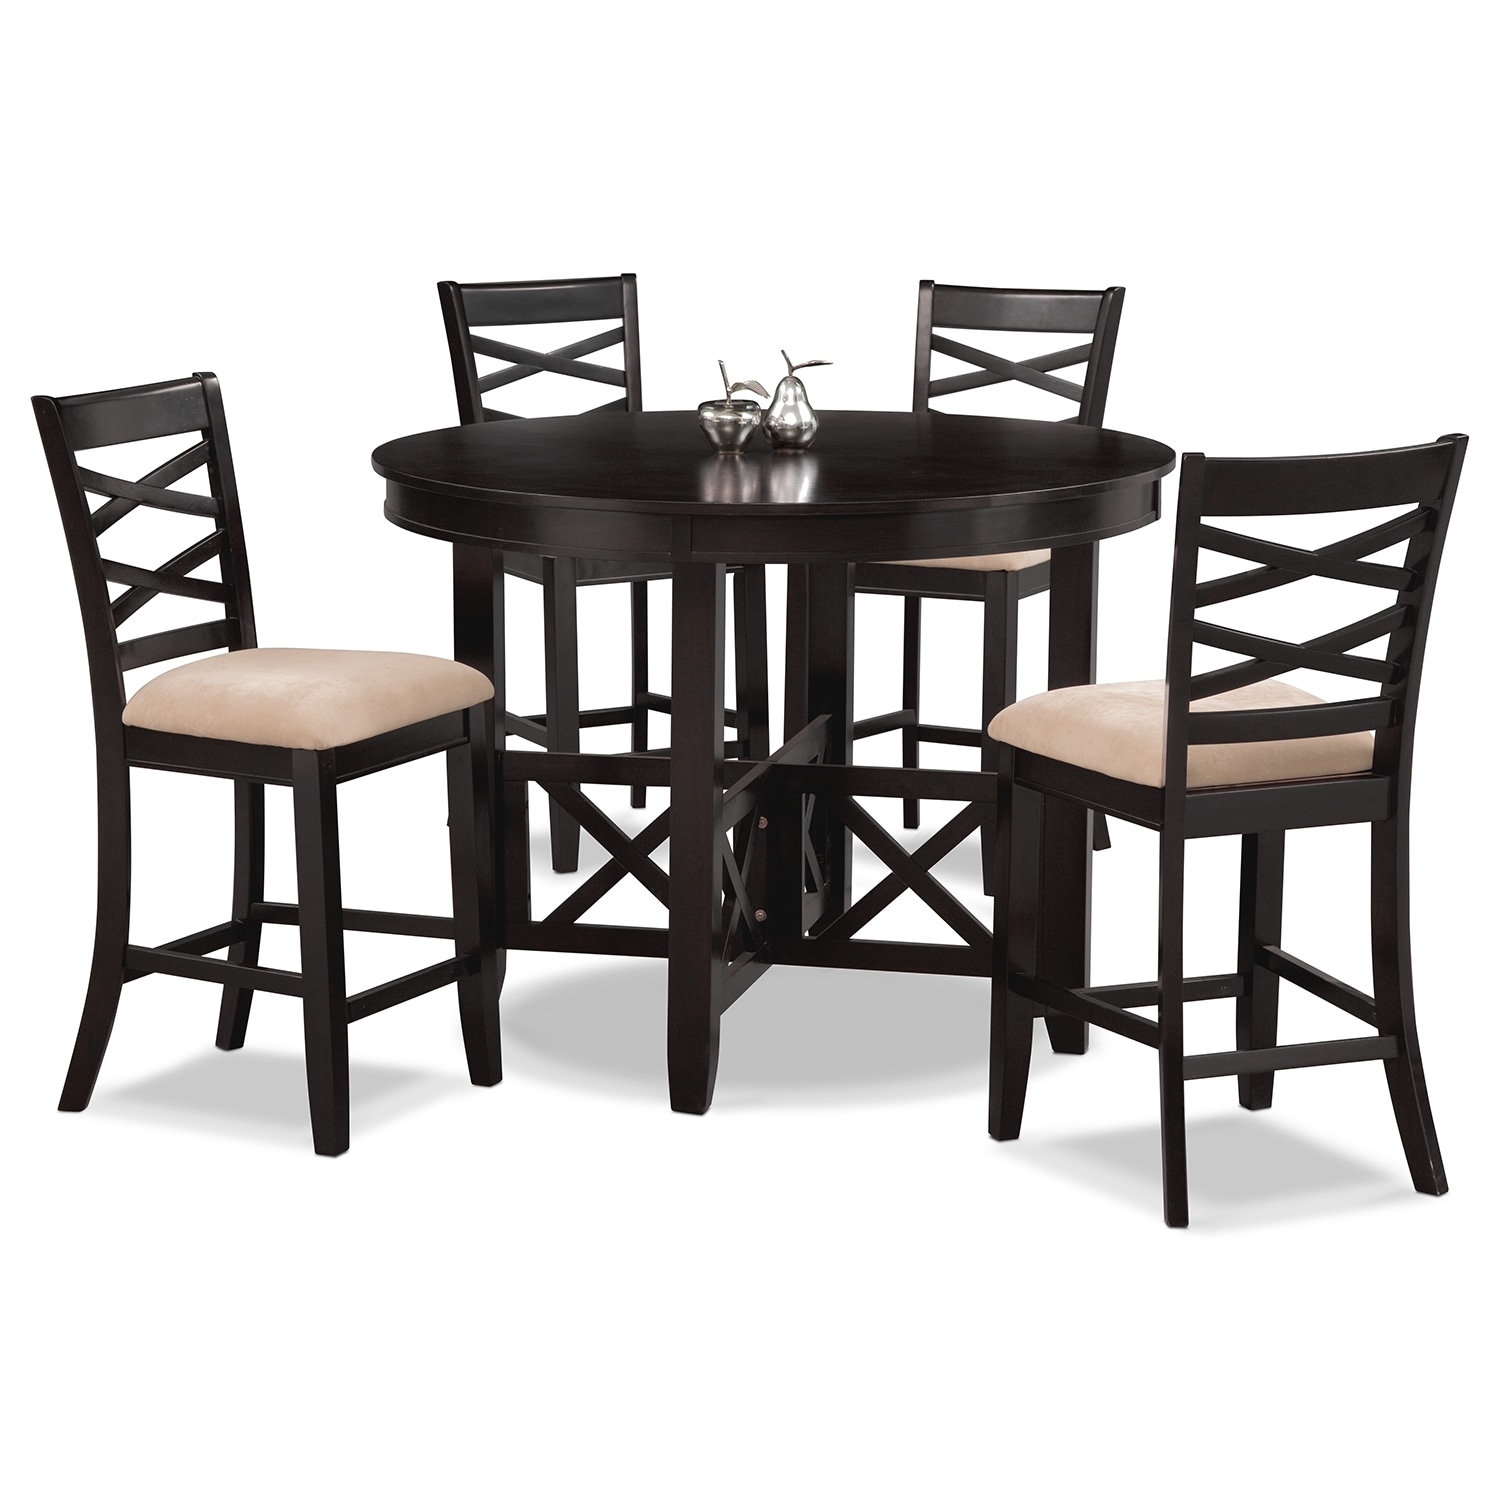 Dining Room Furniture - Americana Espresso 5 Pc. Counter-Height Dinette